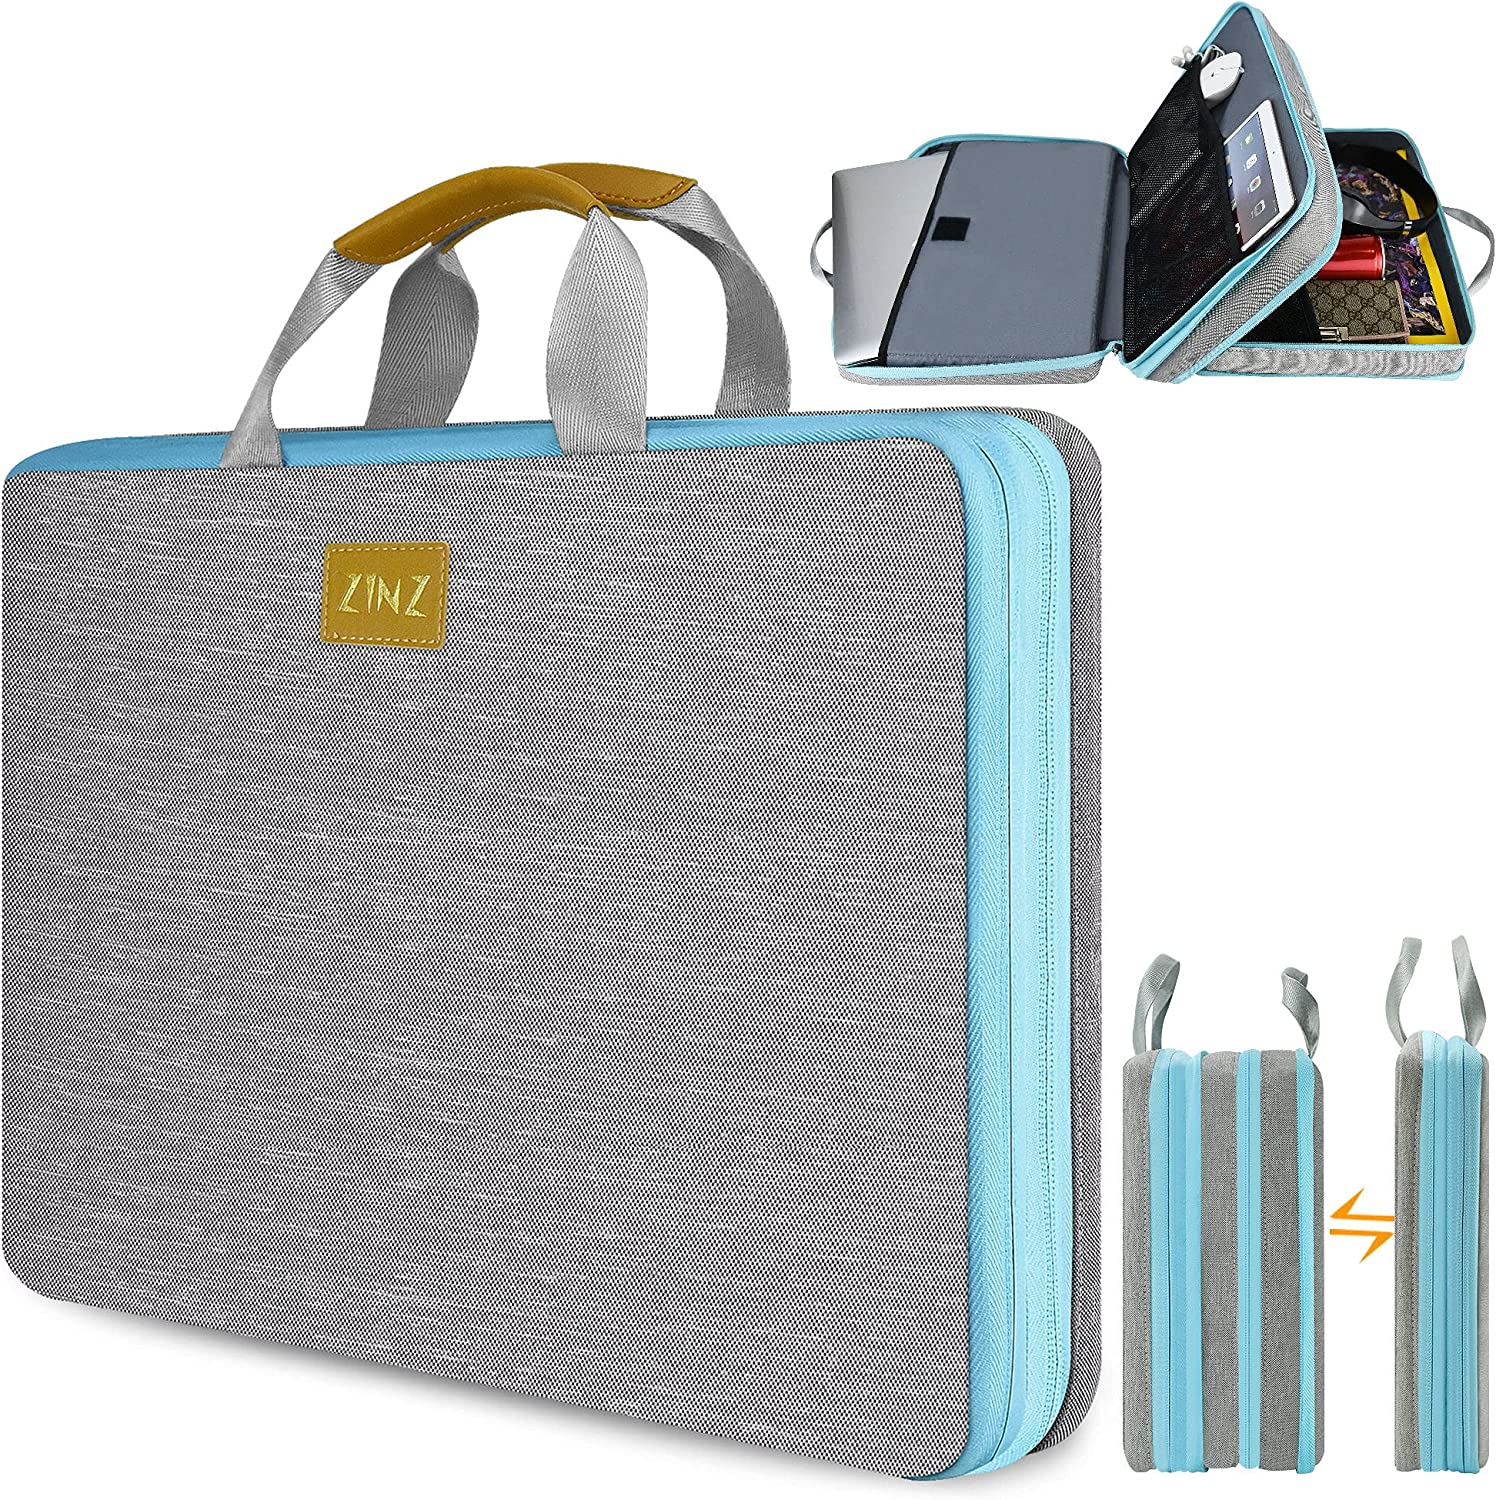 ZINZ Slim & Expandable Laptop Sleeve 15 15.6 16 Inch Case Bag for Popular 15